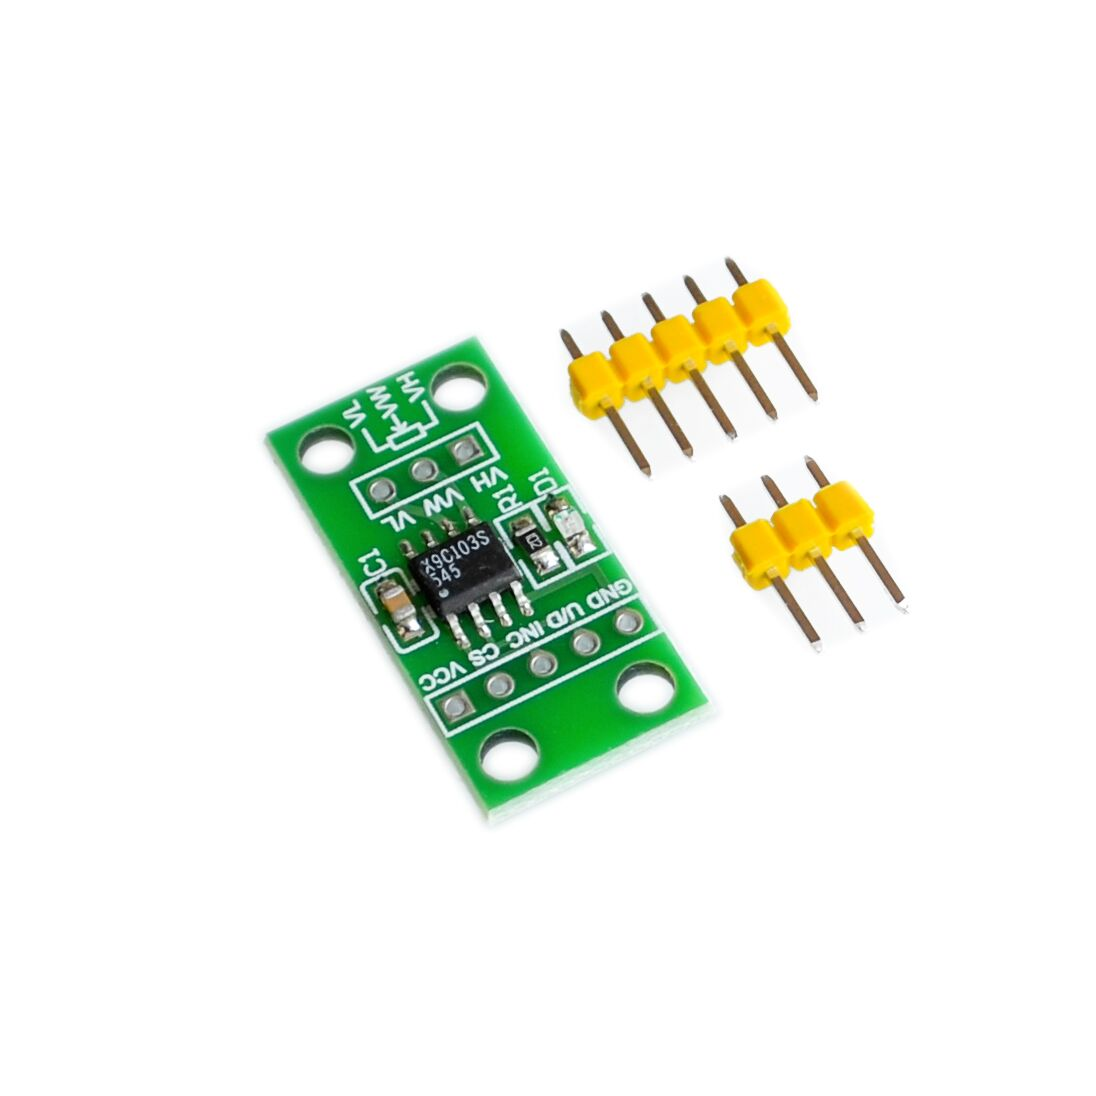 X9C103S Digital Potentiometer Board Module DC3V-5V For Arduino